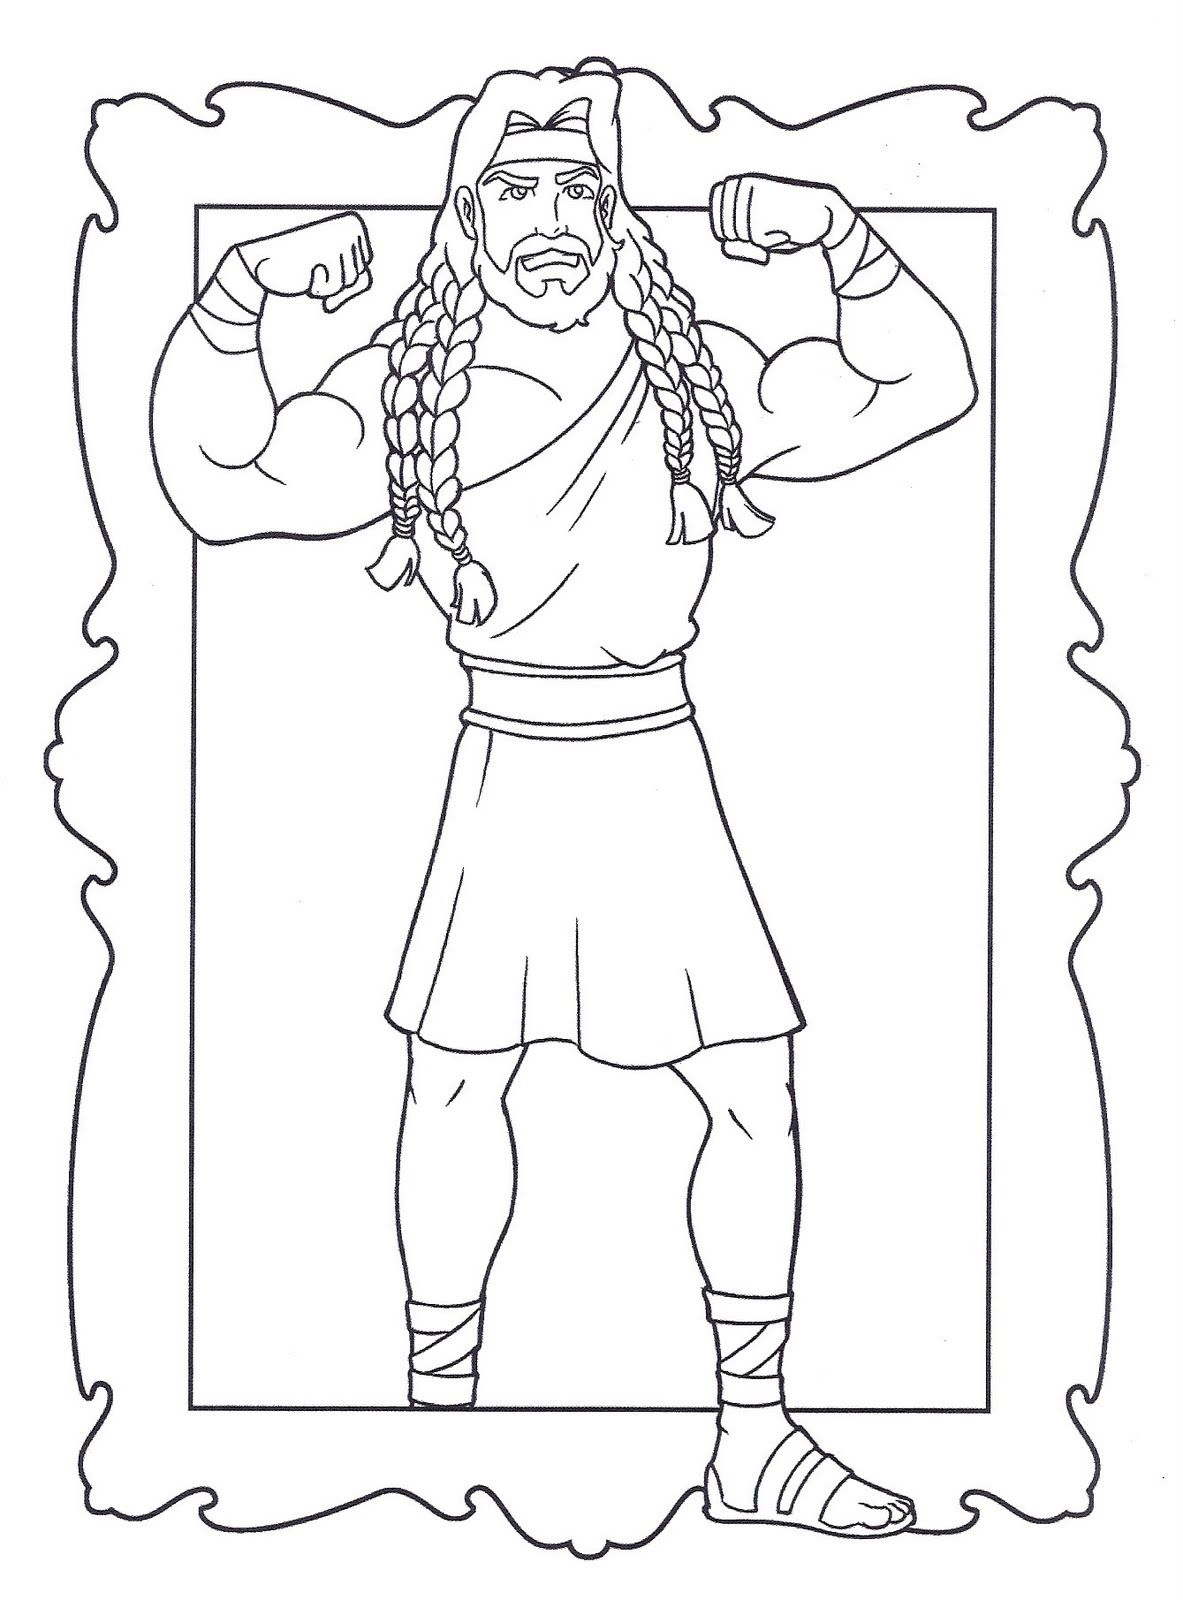 preschool bible lessons coloring pages - photo#7